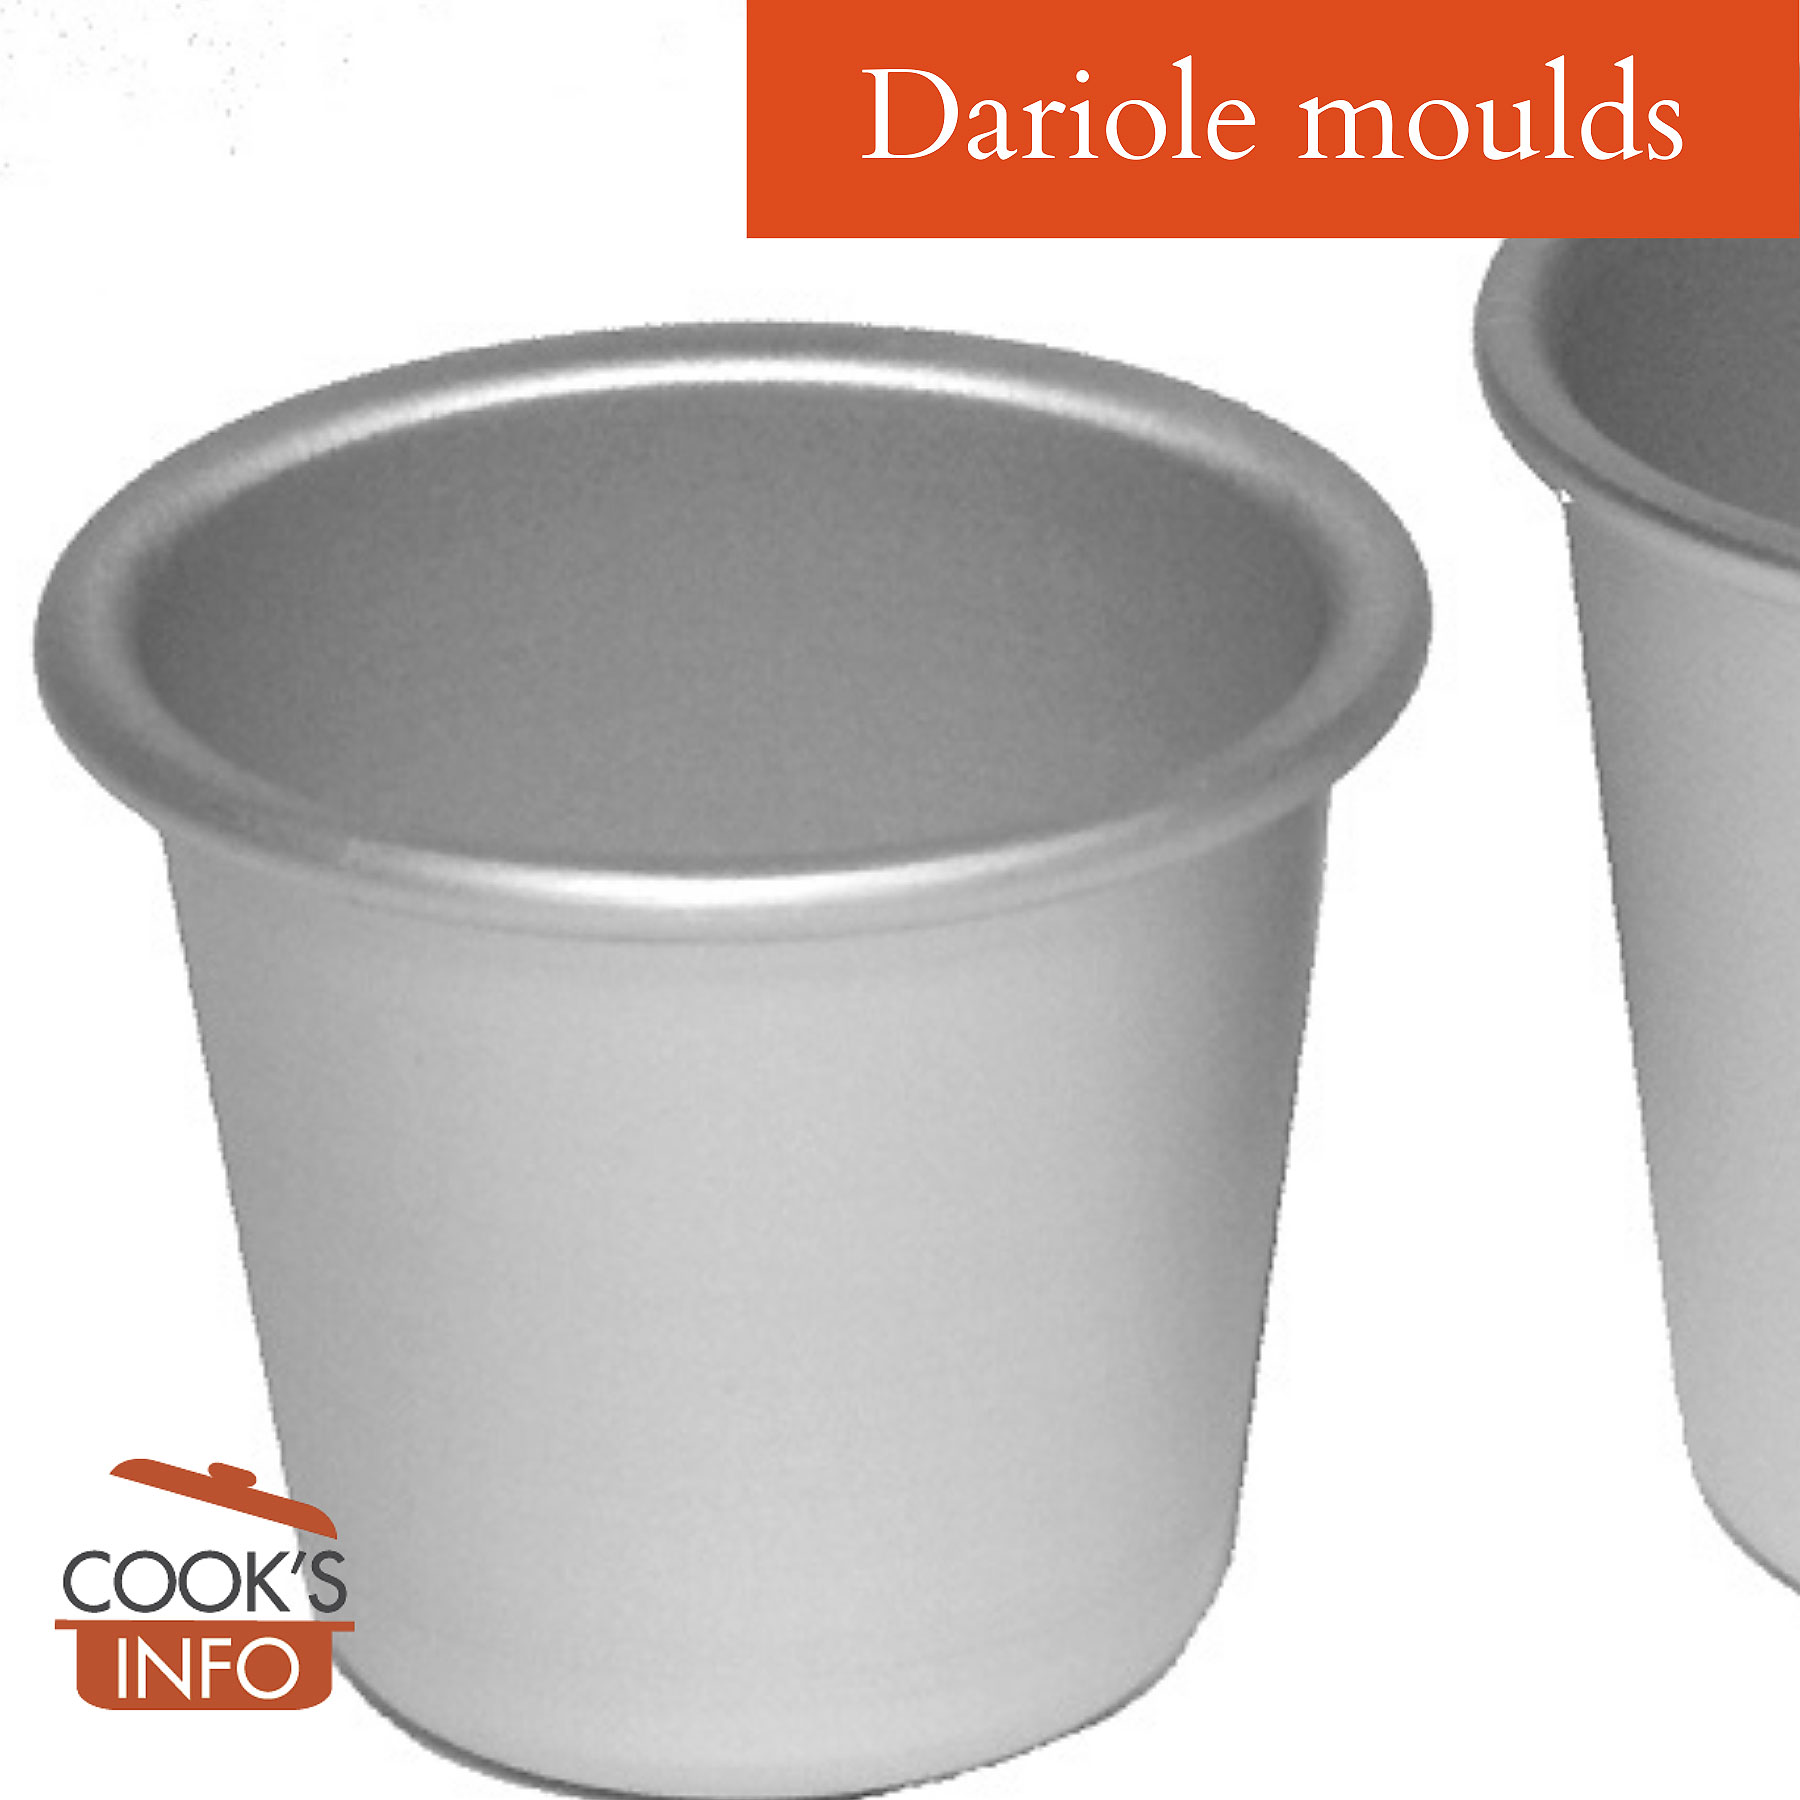 Dariole moulds